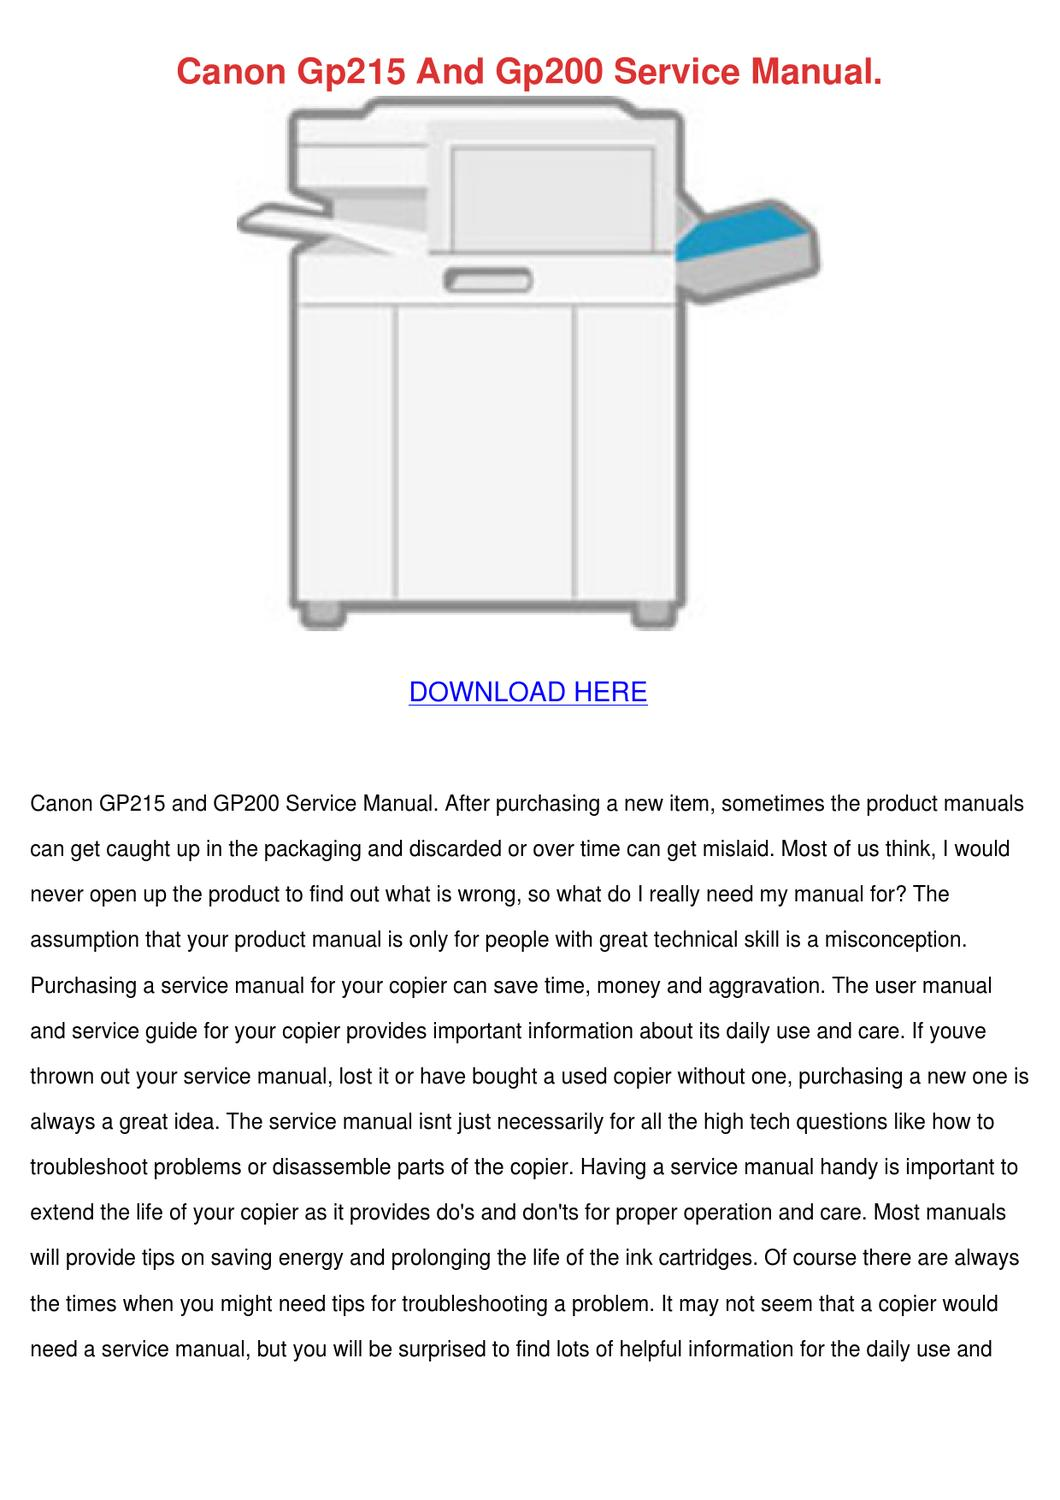 Canon Gp215 And Gp200 Service Manual by Marilou Heap - issuu